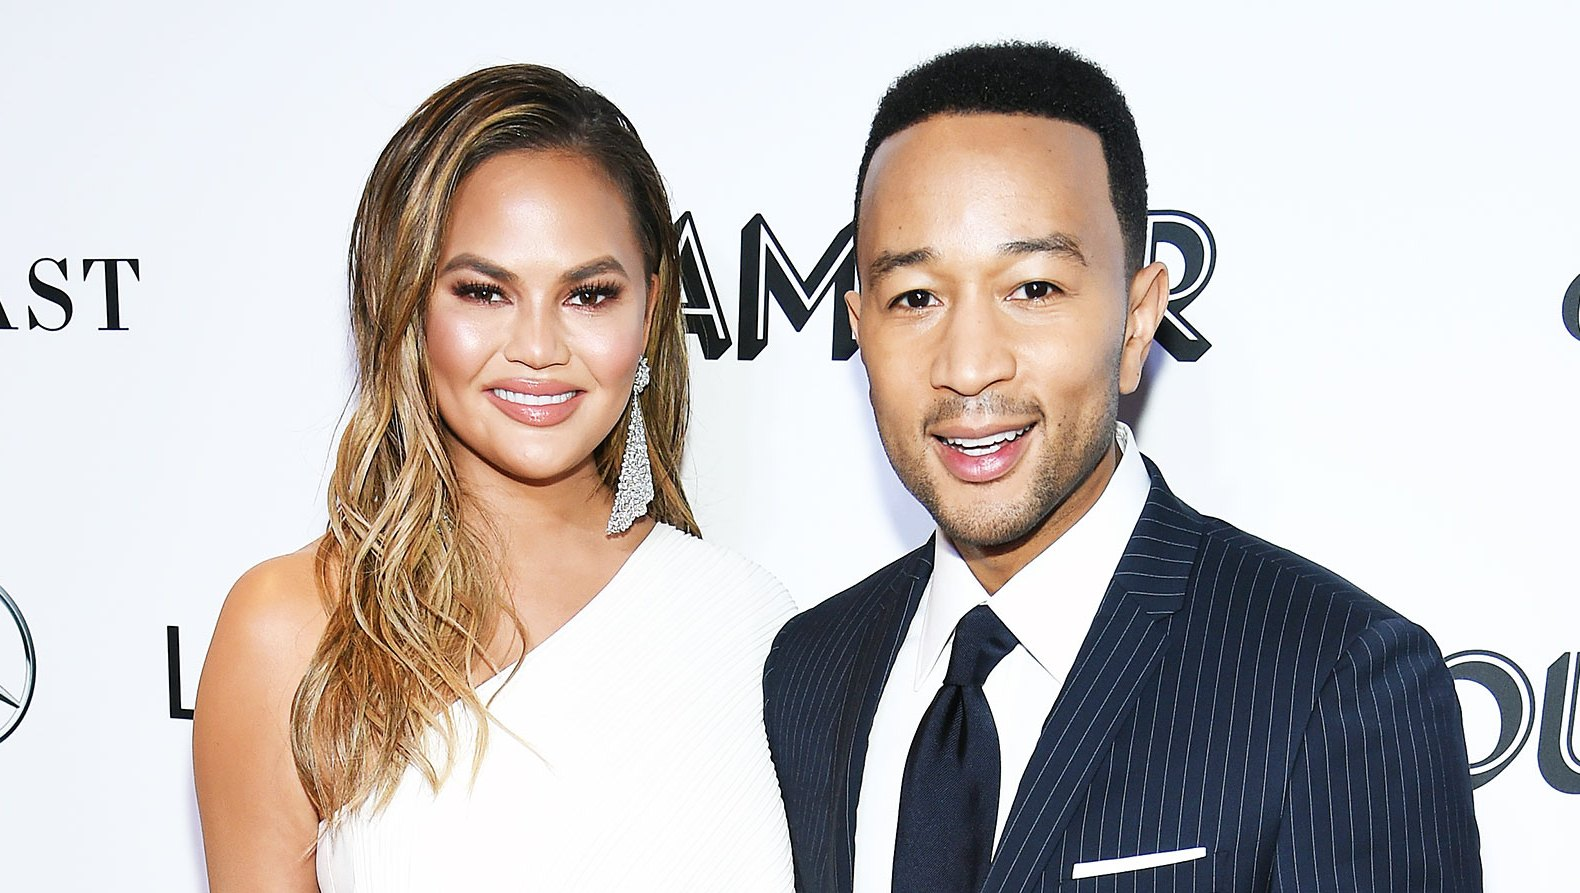 Chrissy Teigen Imitates John Legend Super Bowl Commercial